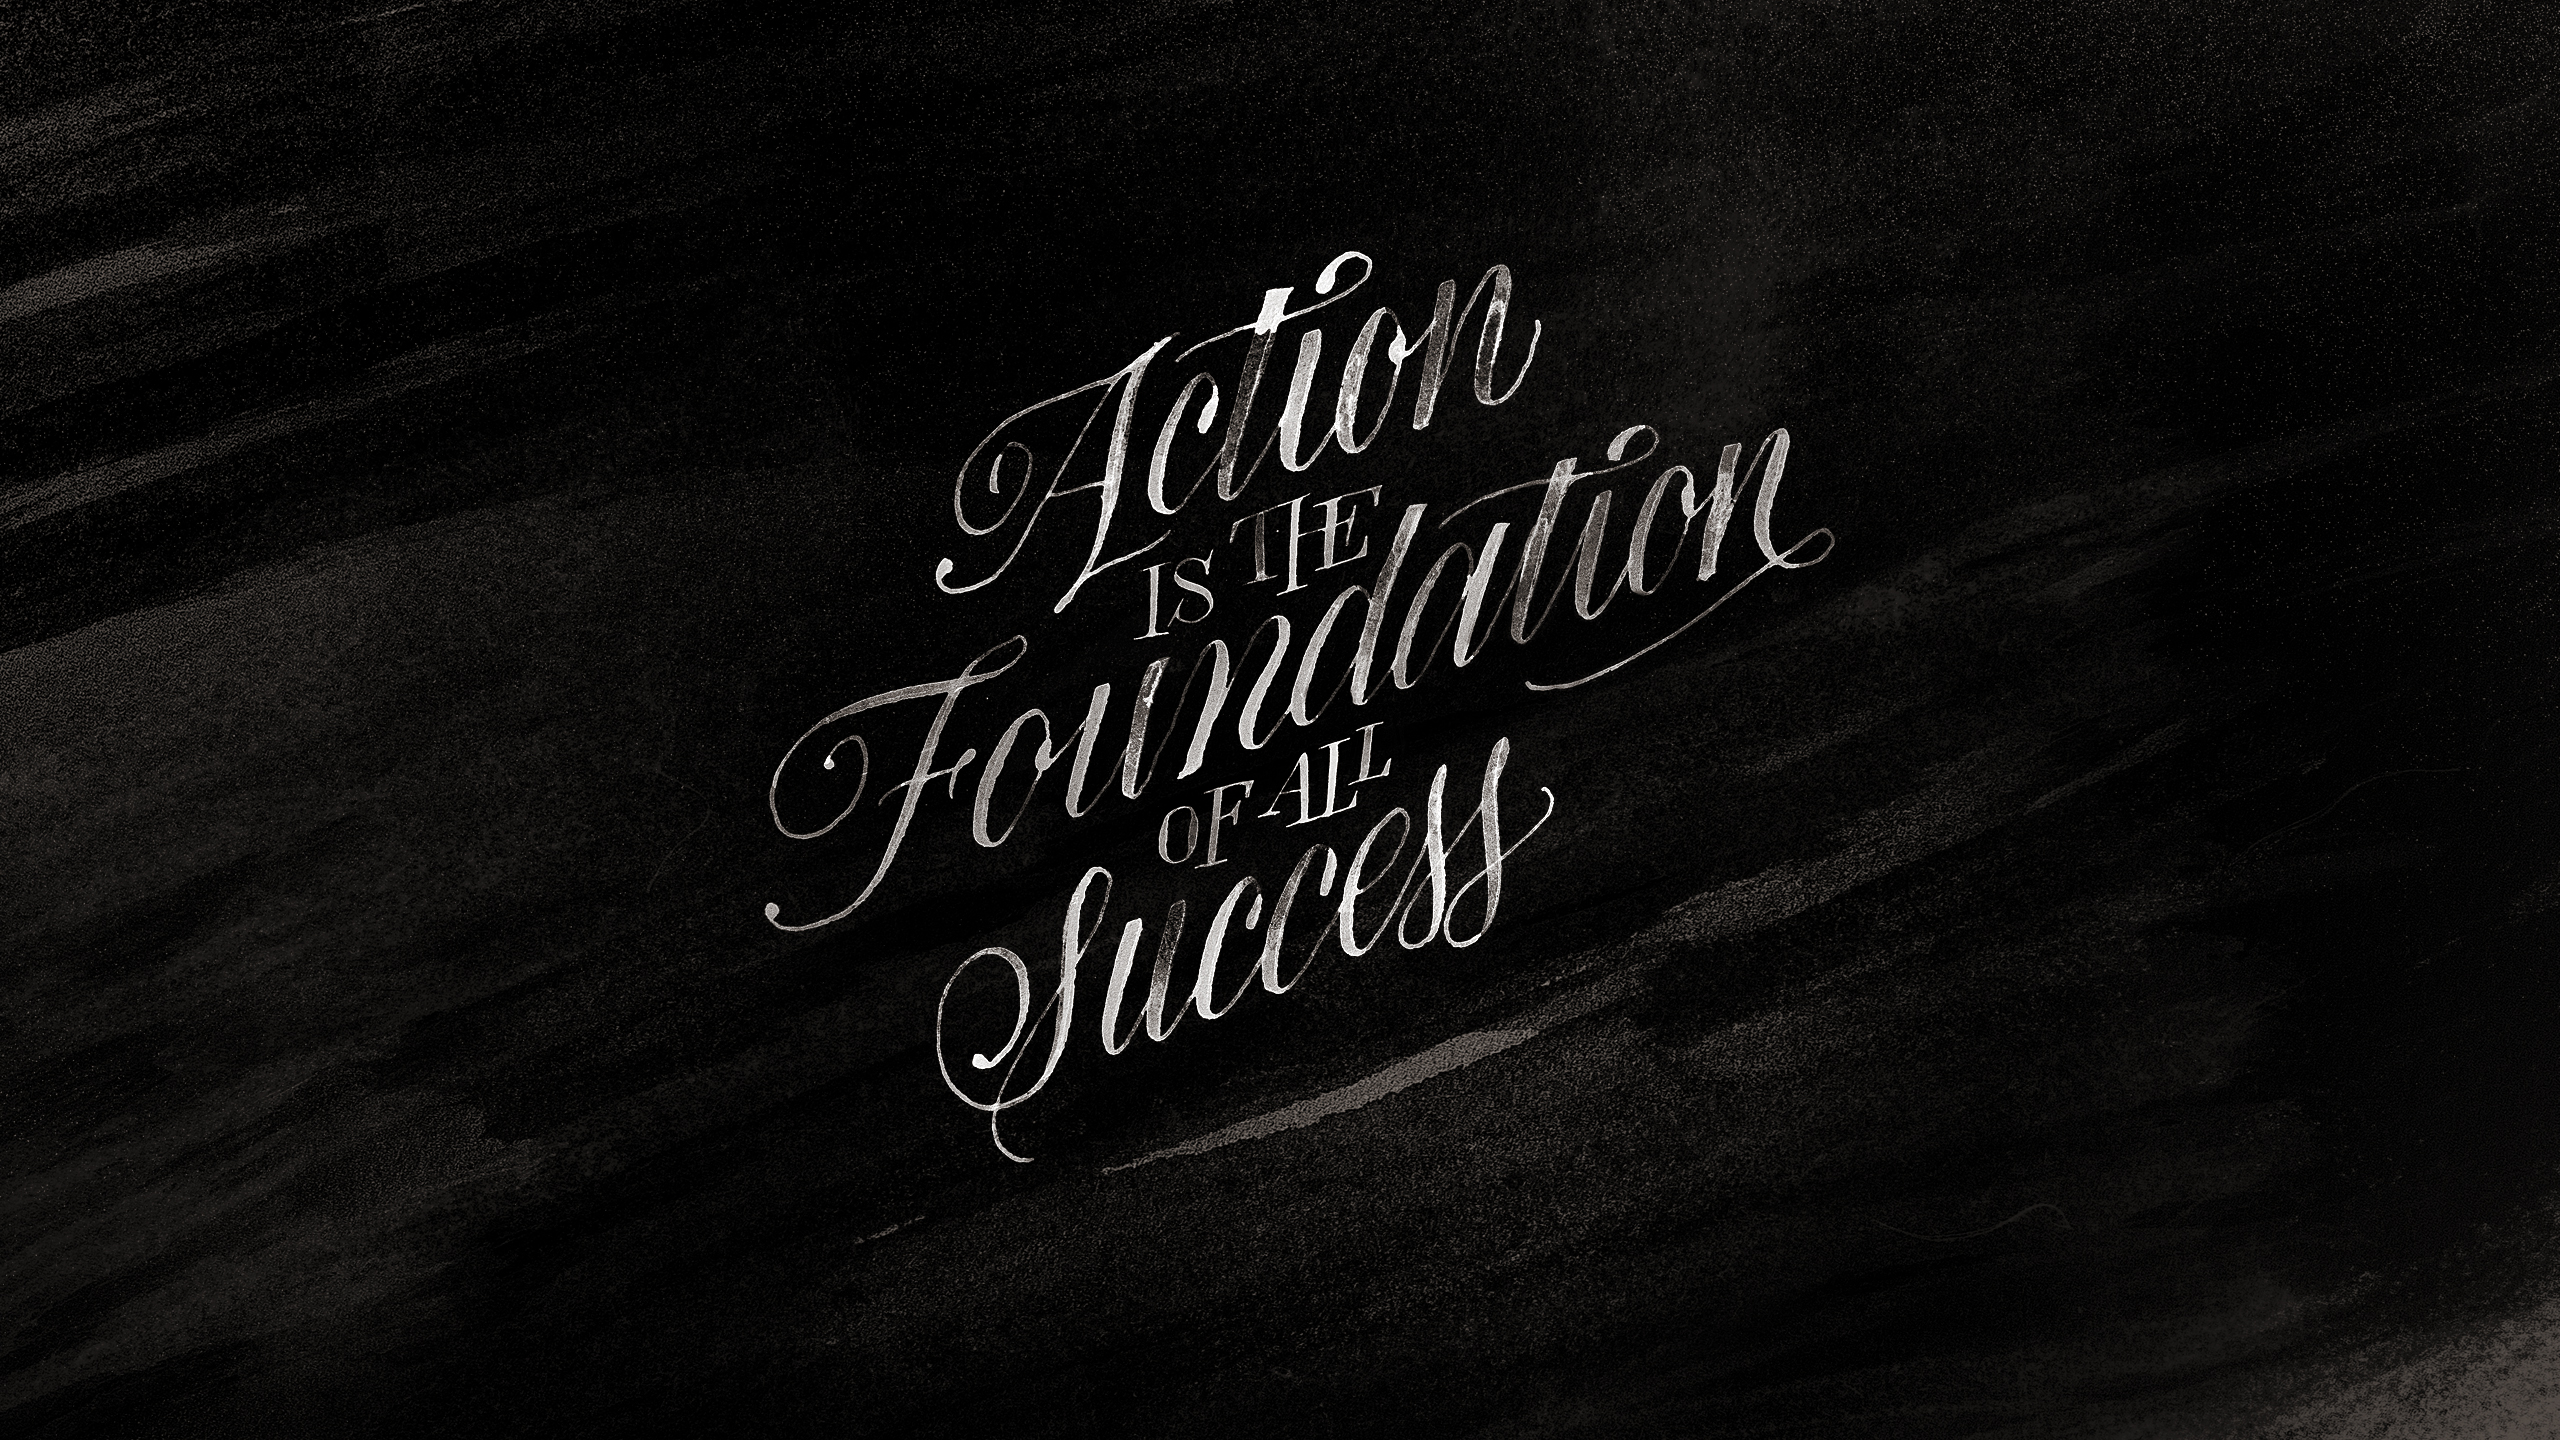 success   Picasso quotes simple minimalist black and white wallpaper 2560x1440